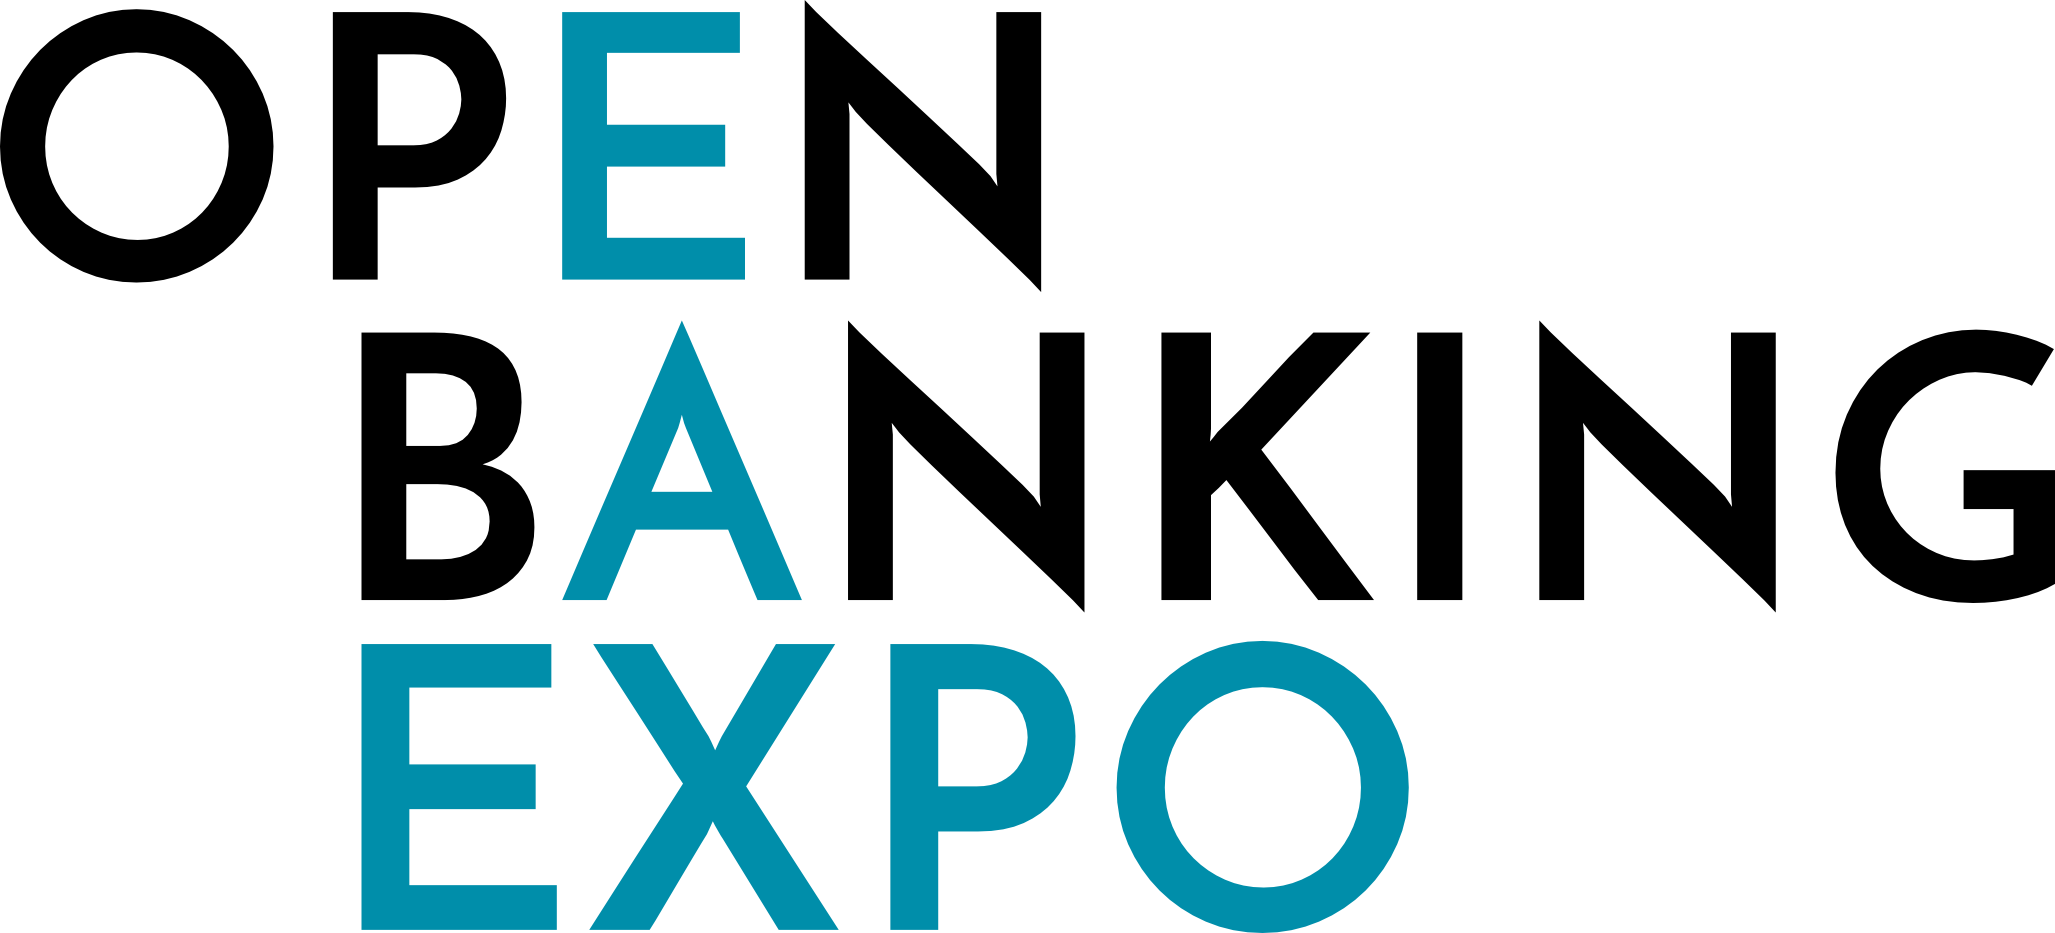 Open Banking Expo launches to spearhead innovation and roll-out across multiple industry sectors